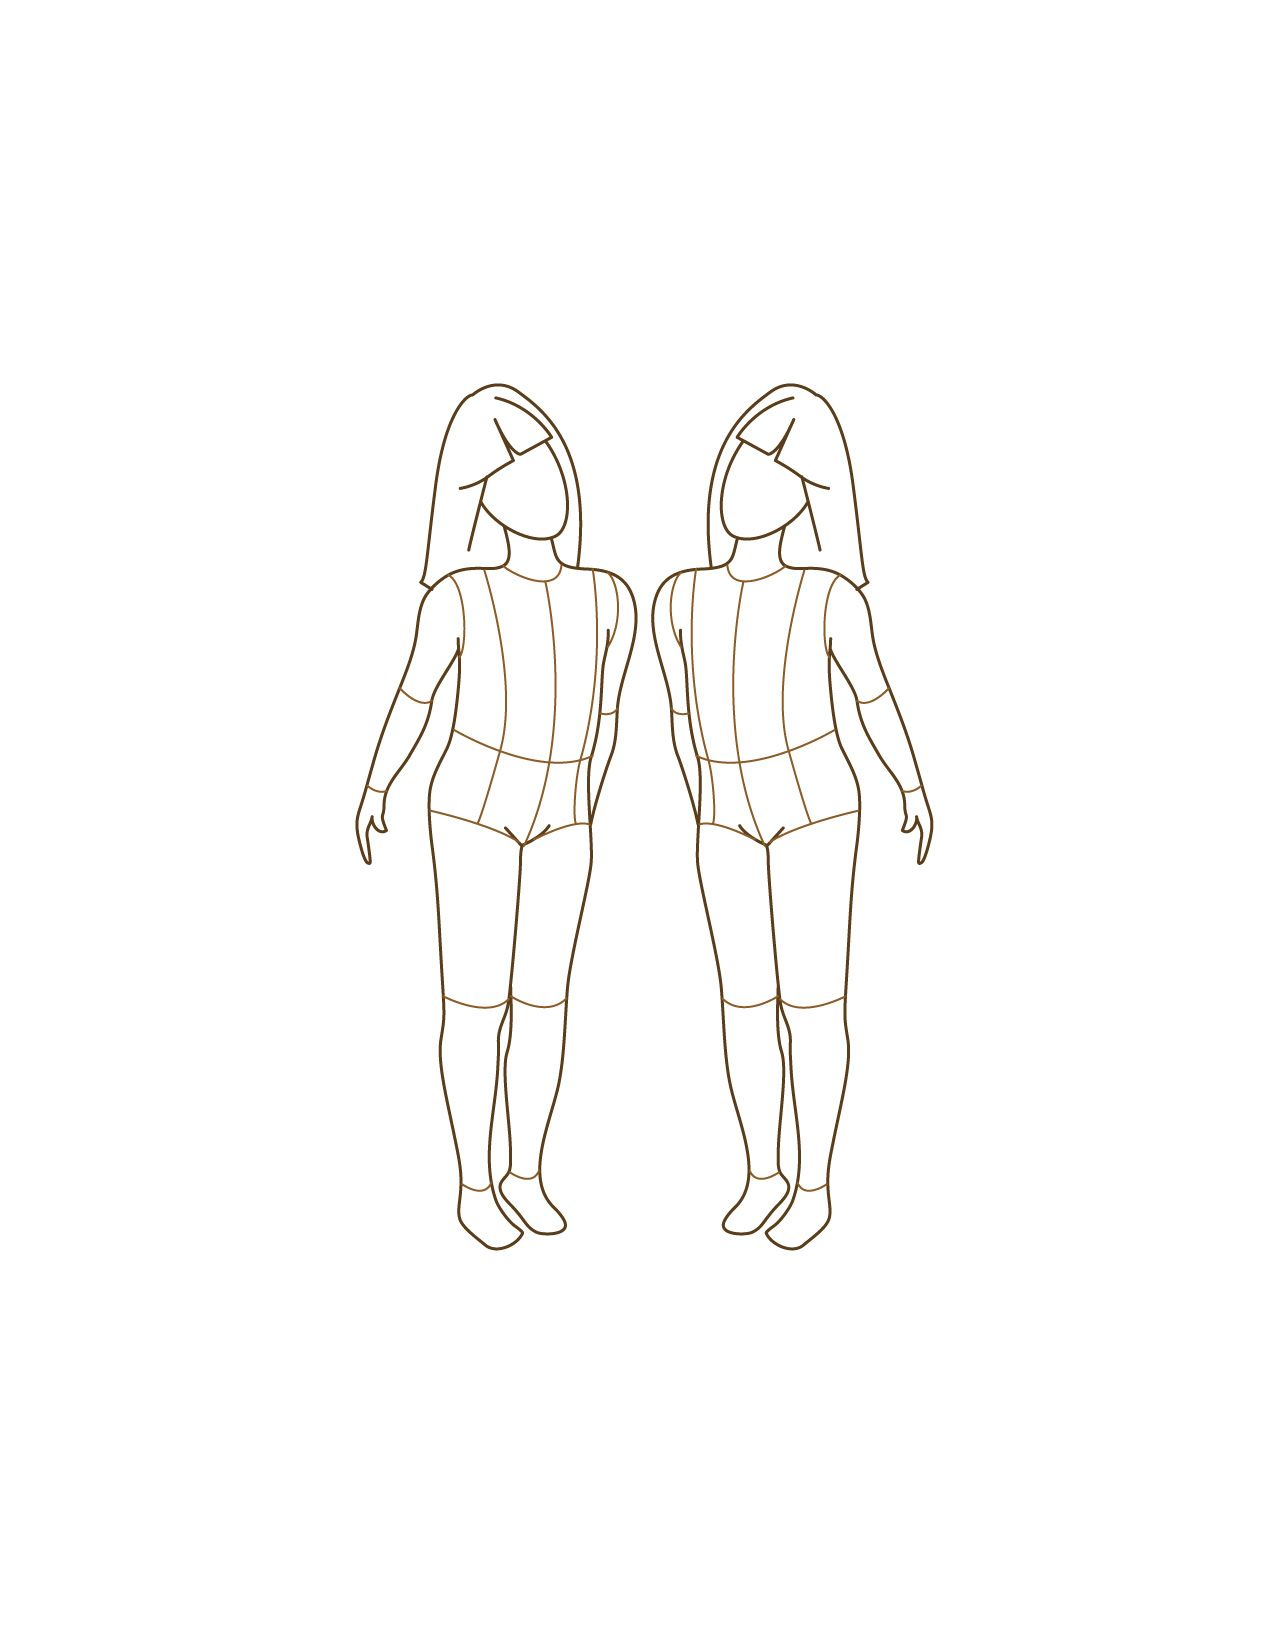 Children fashion figure templates